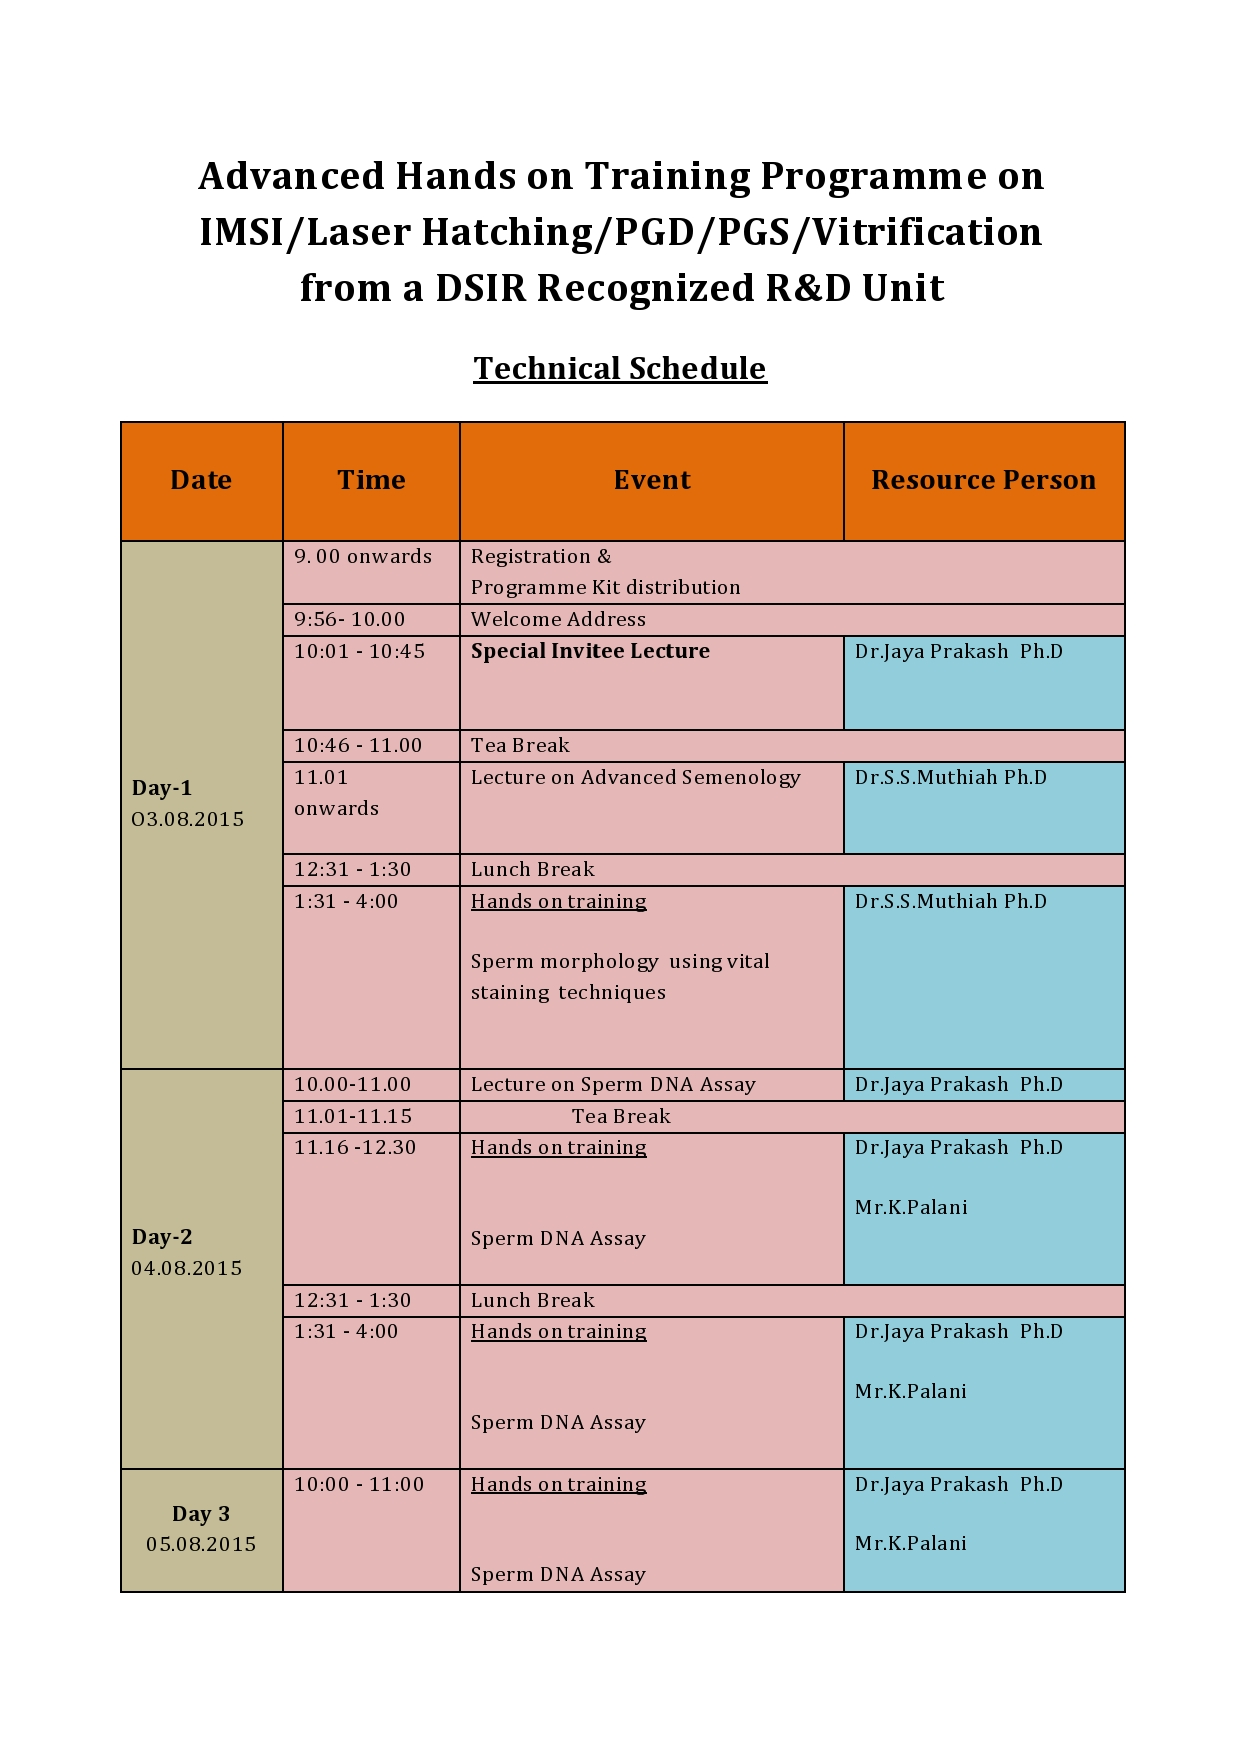 Technical Schedule - Page 1